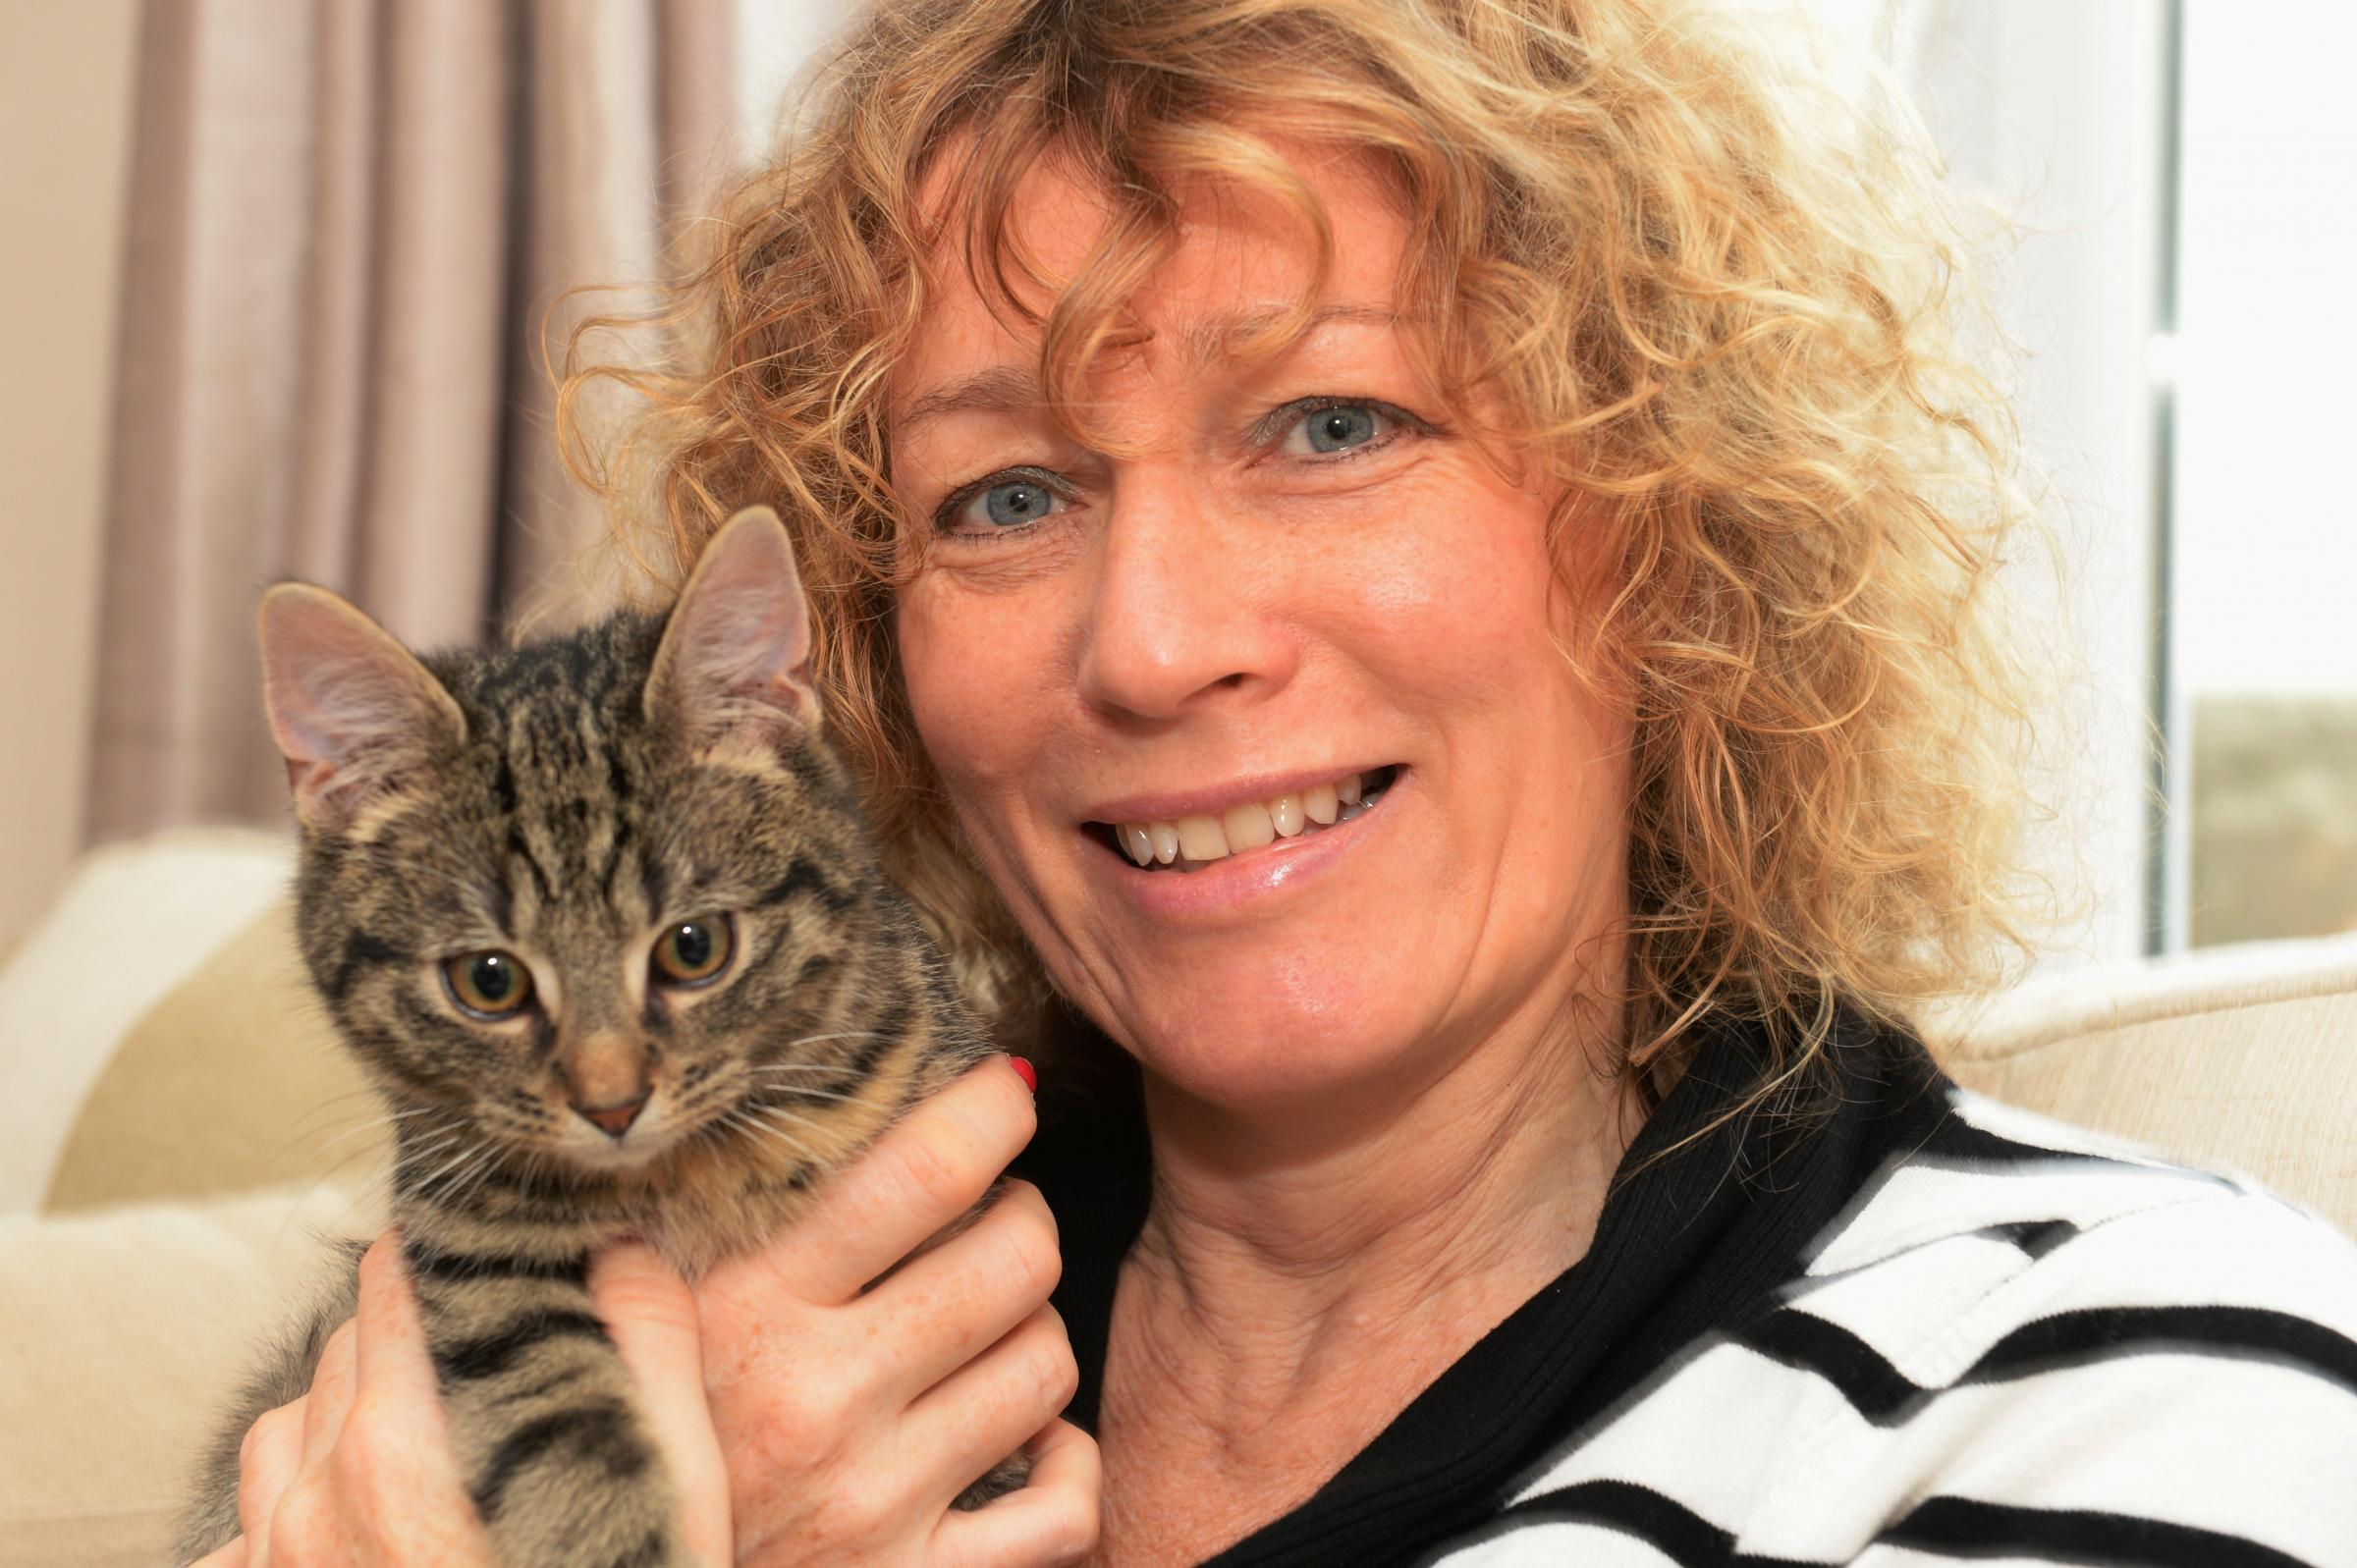 Juliet Gallatley, founder of V'IVA, (vegetarian international voice for animals) with her kitten, Loki, at her home in Shirenewton, who is to make a record to help raise funds with the help of celebs (2797051)